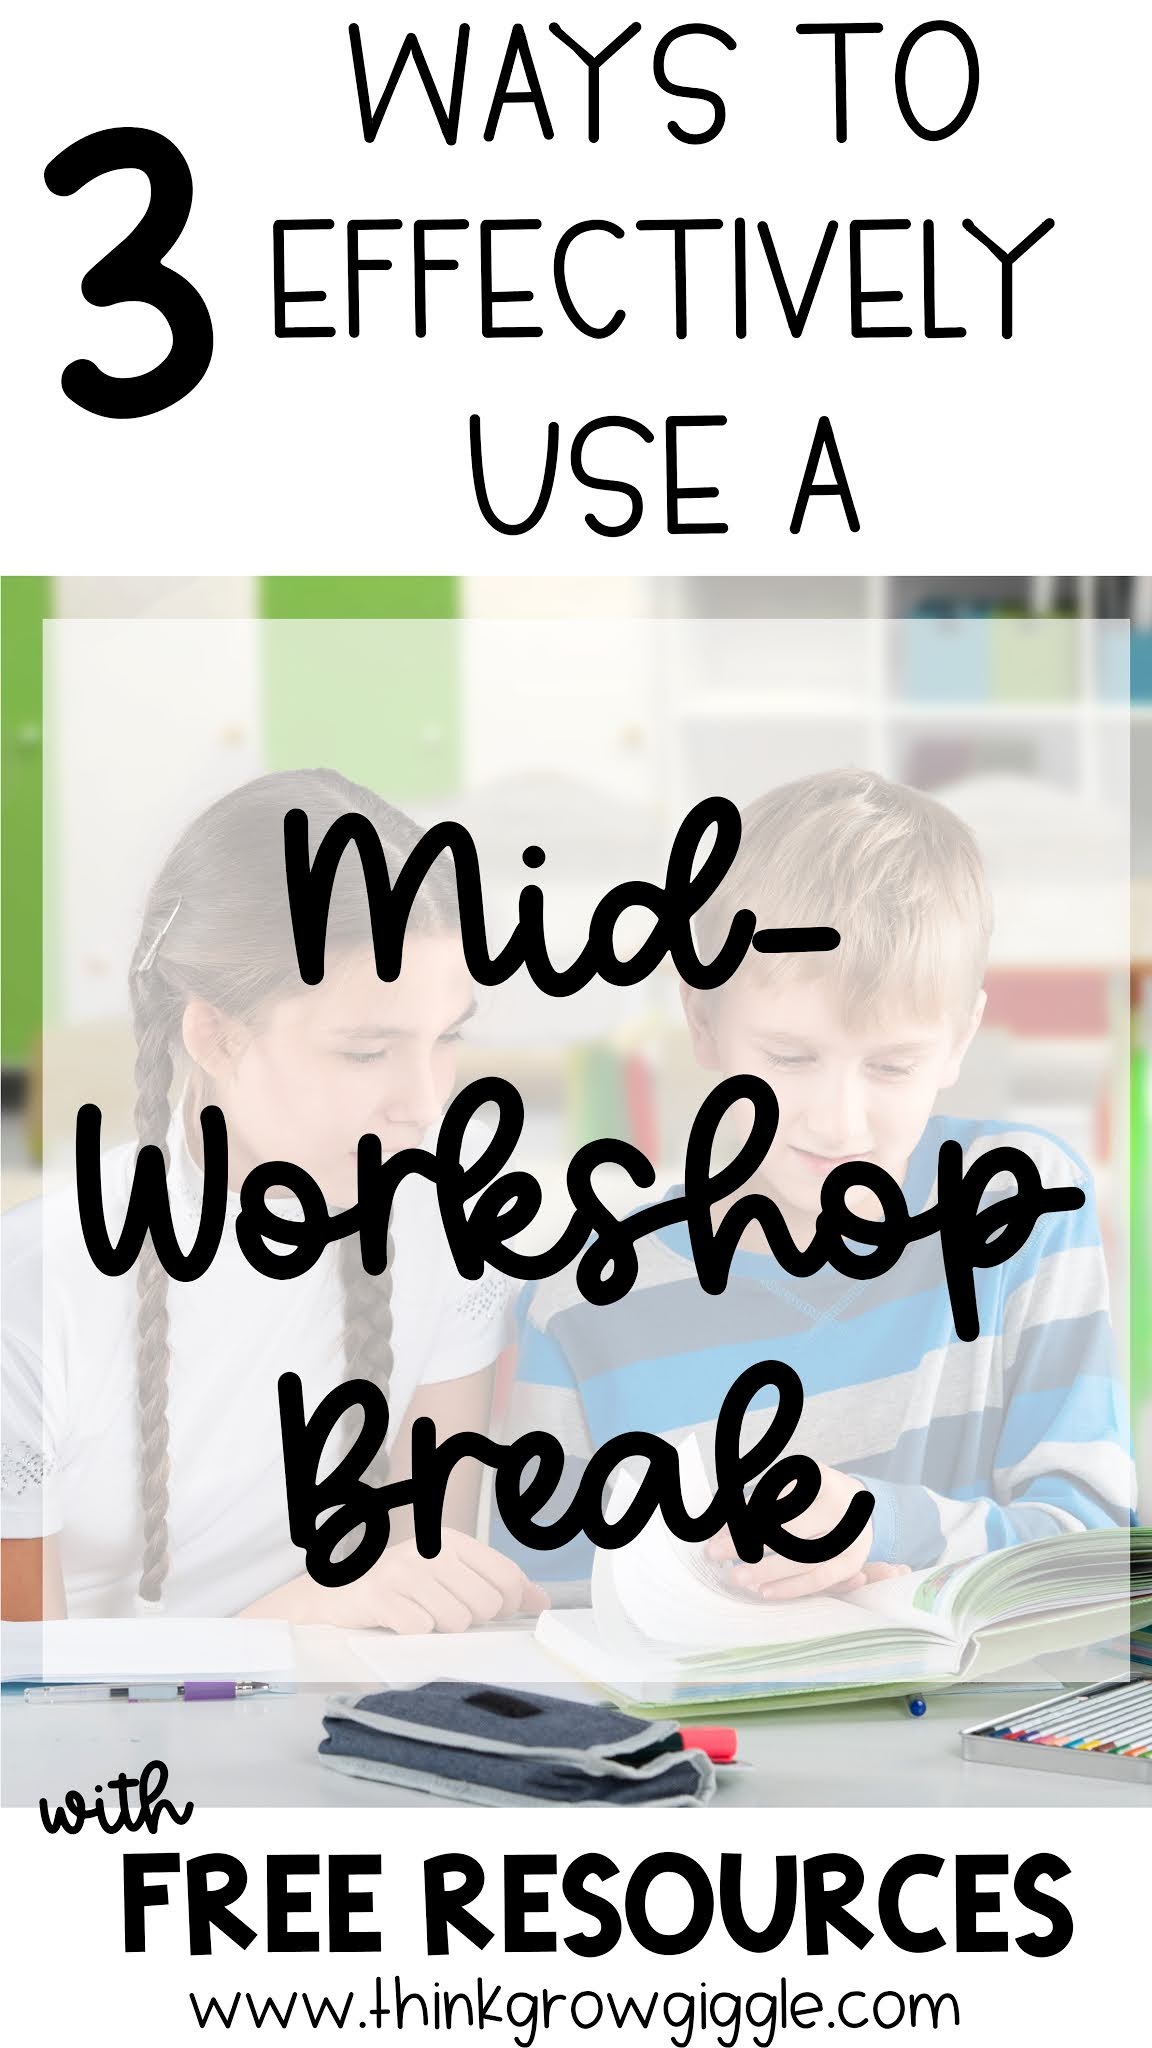 3 Ways to Effectively Use the Mid-Workshop Break